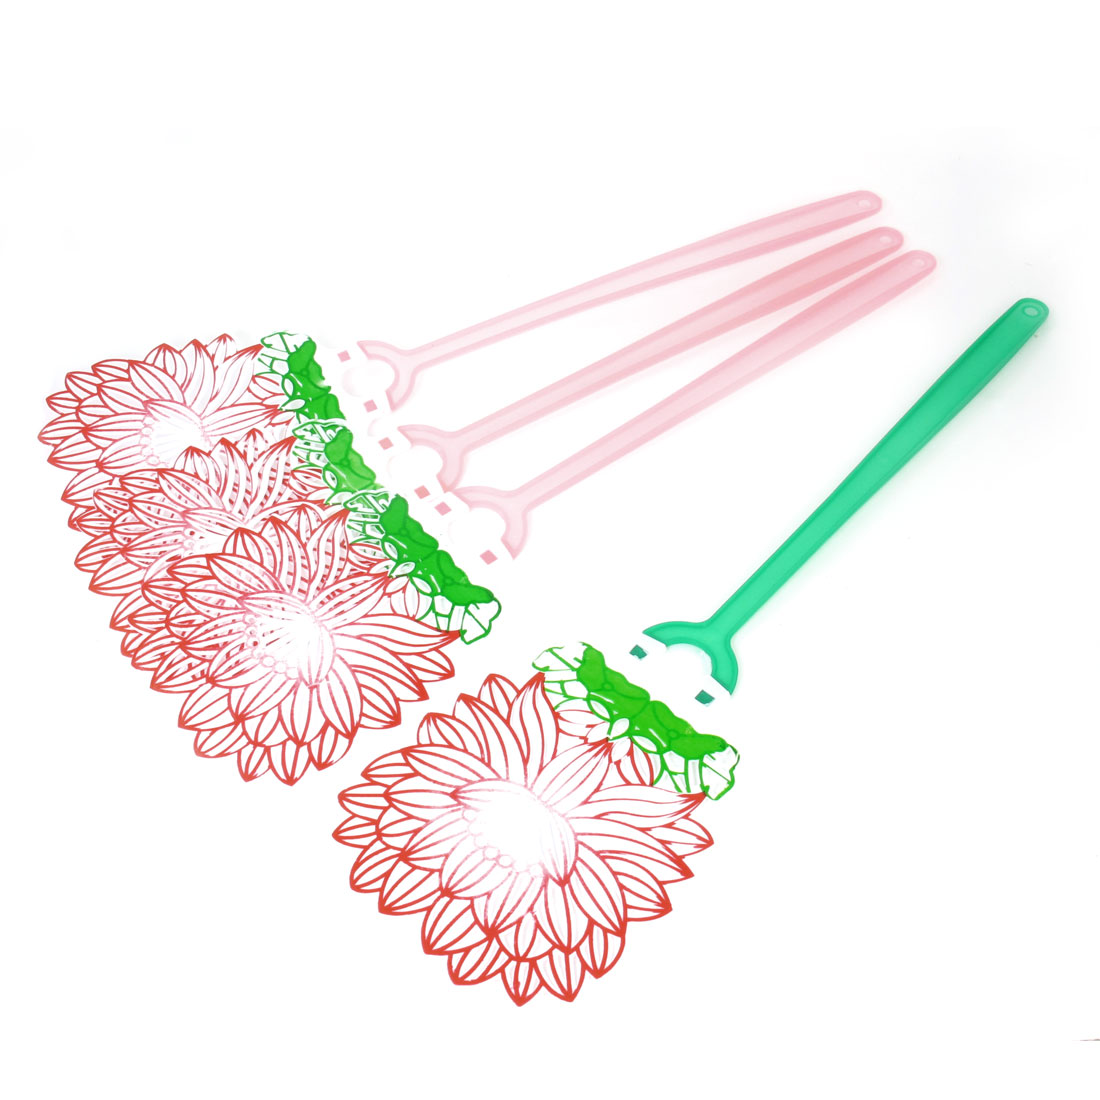 4 Pcs Green Pink Handle Grip Red Lotus Mosquito Cockroach Fly Swatter Flapper